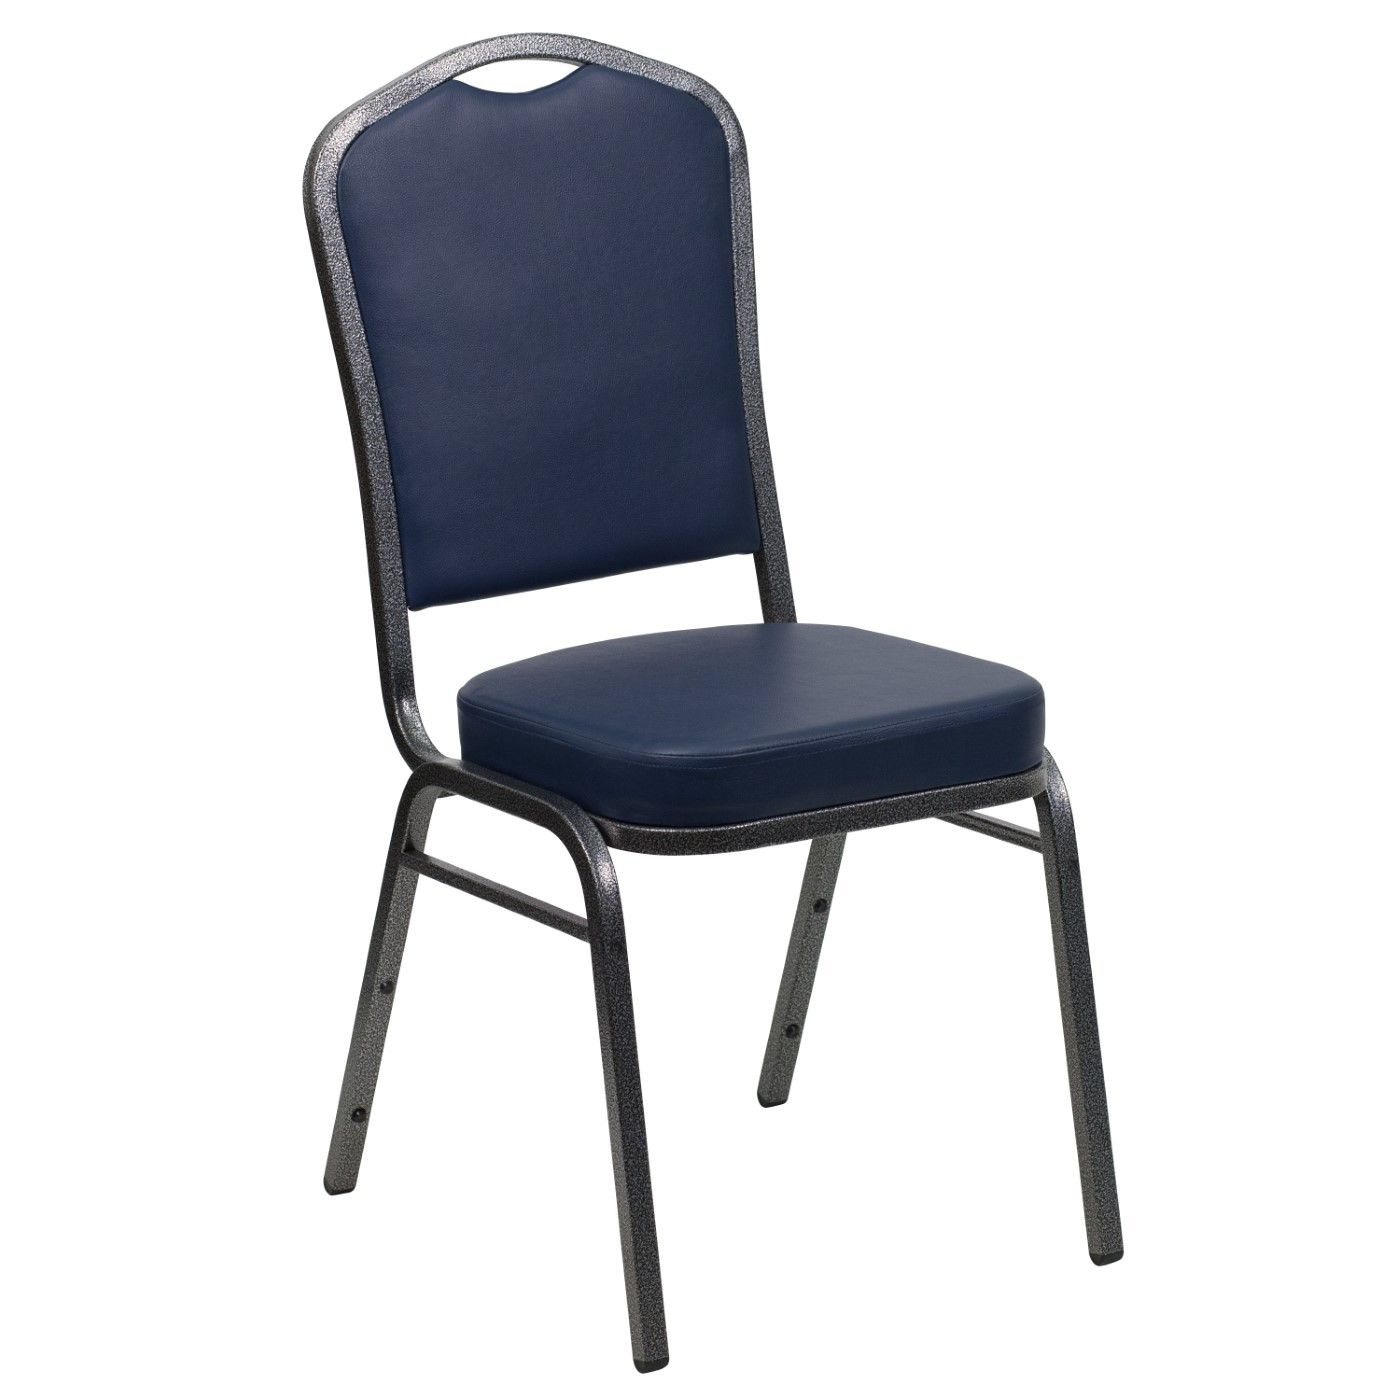 TOUGH ENOUGH Series Crown Back Stacking Banquet Chair in Navy Vinyl - Silver Vein Frame